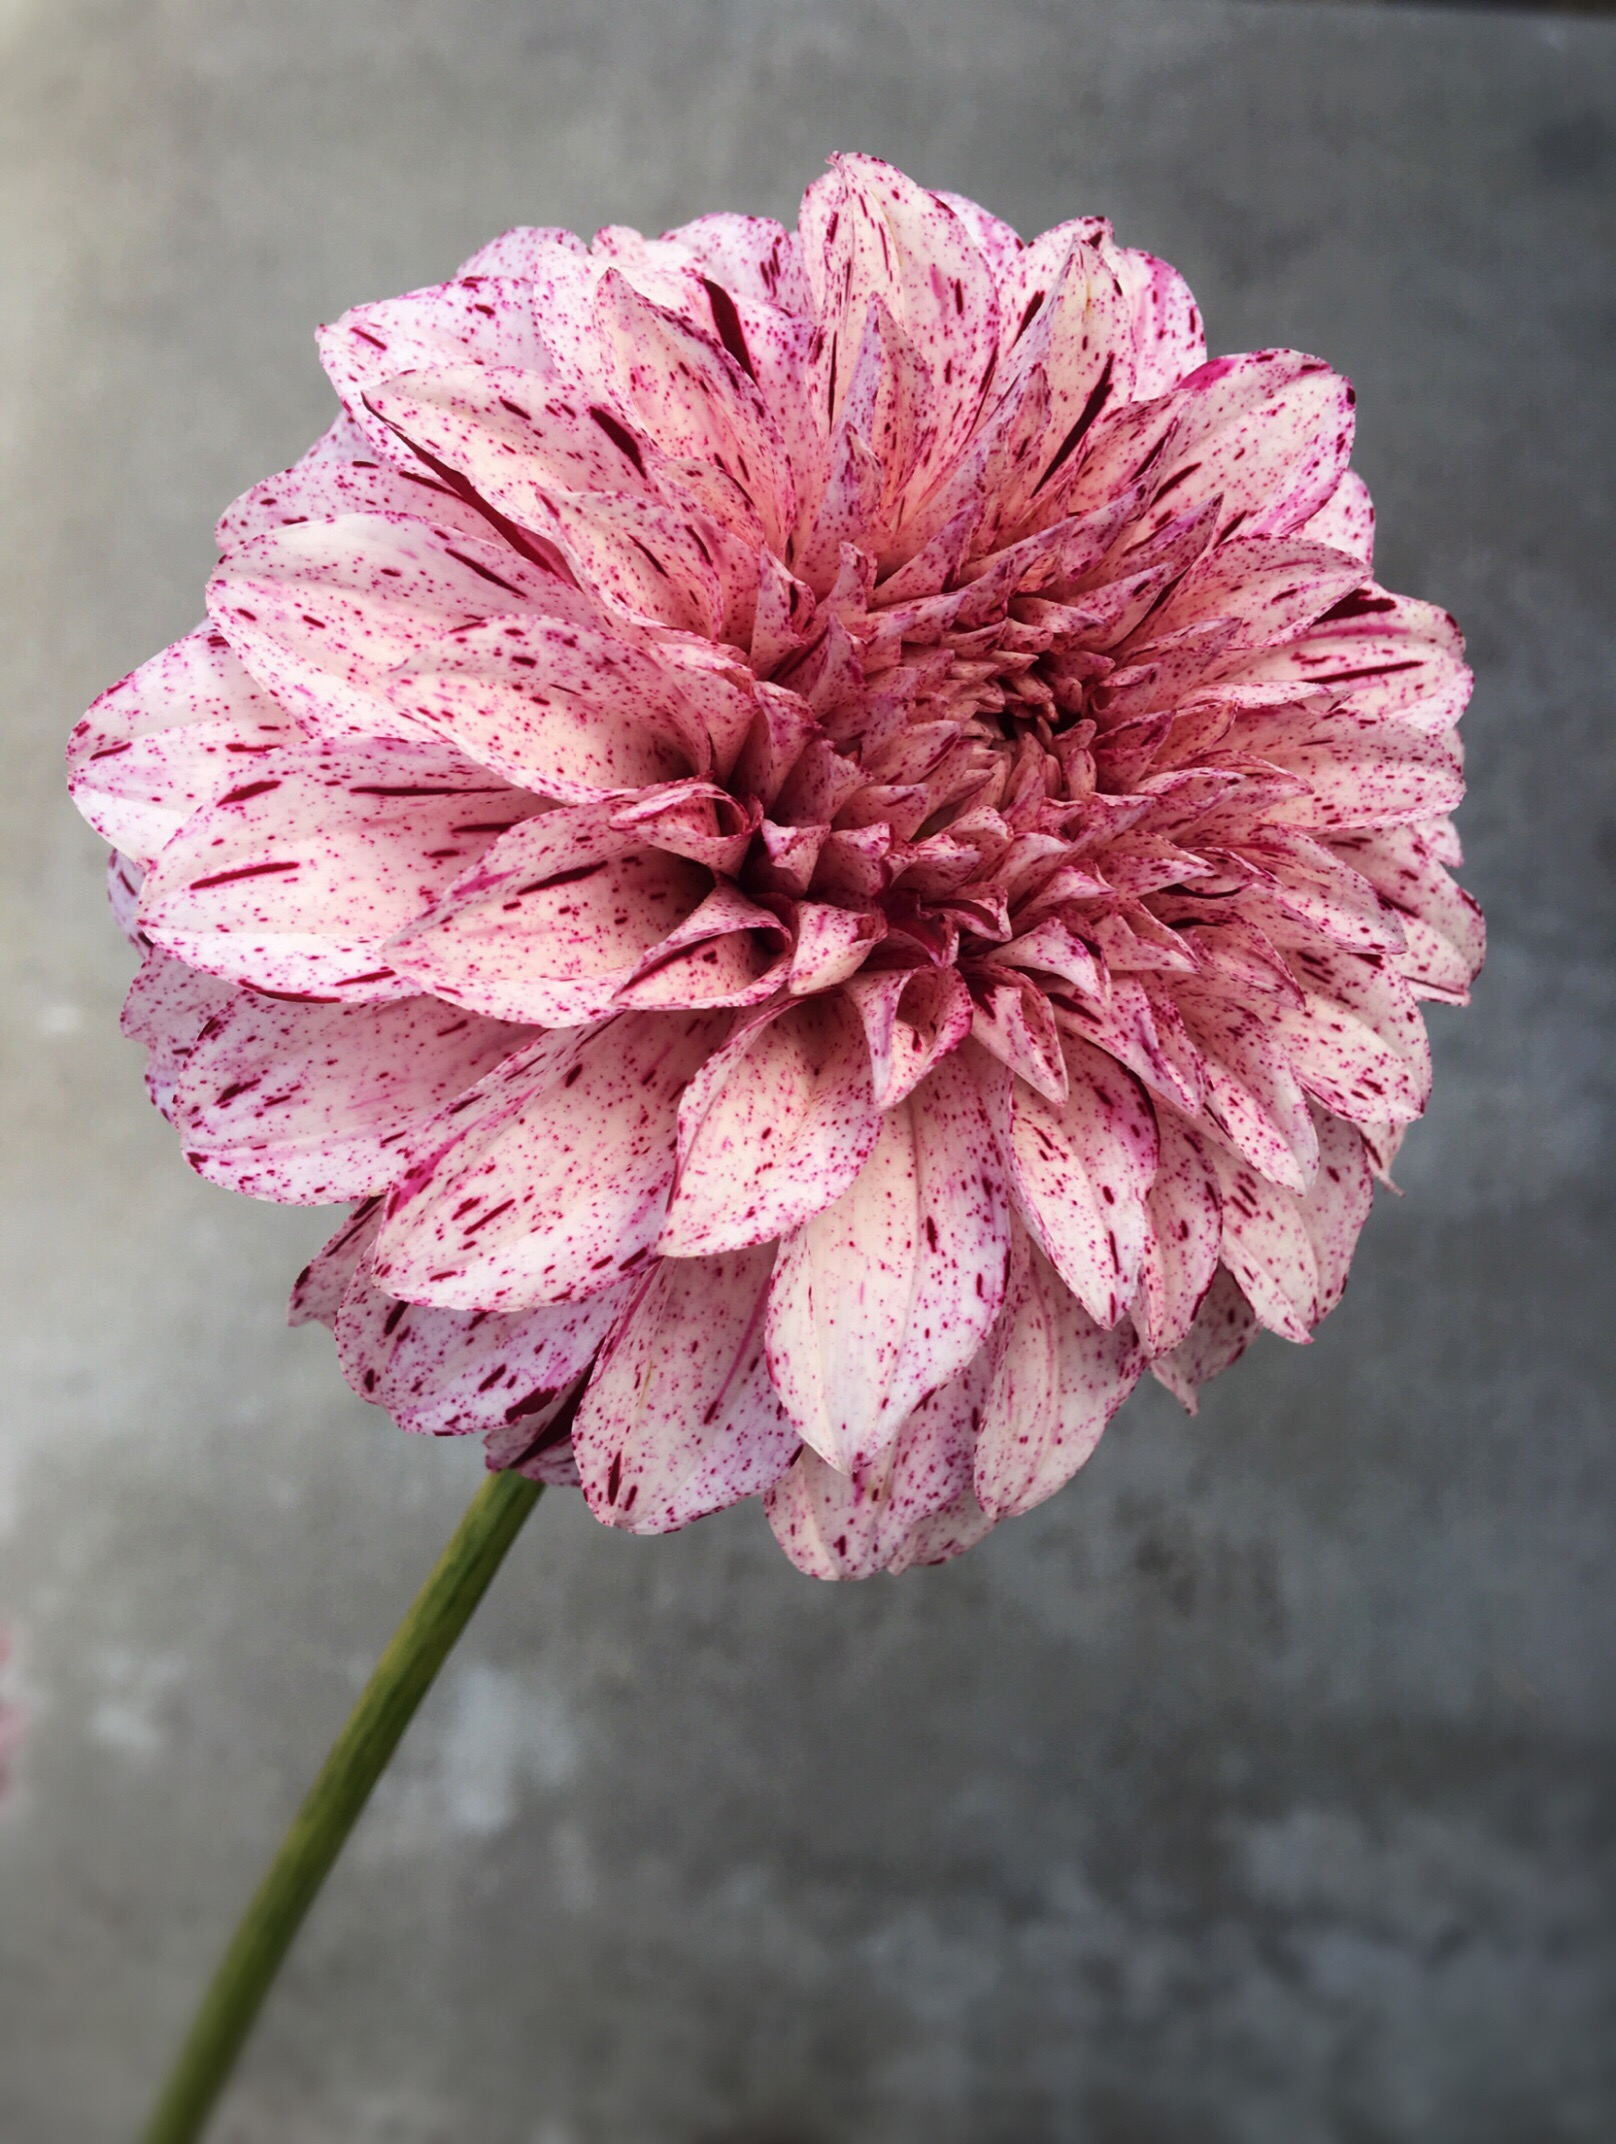 Beautiful speckled dahlia who's name I can't remember